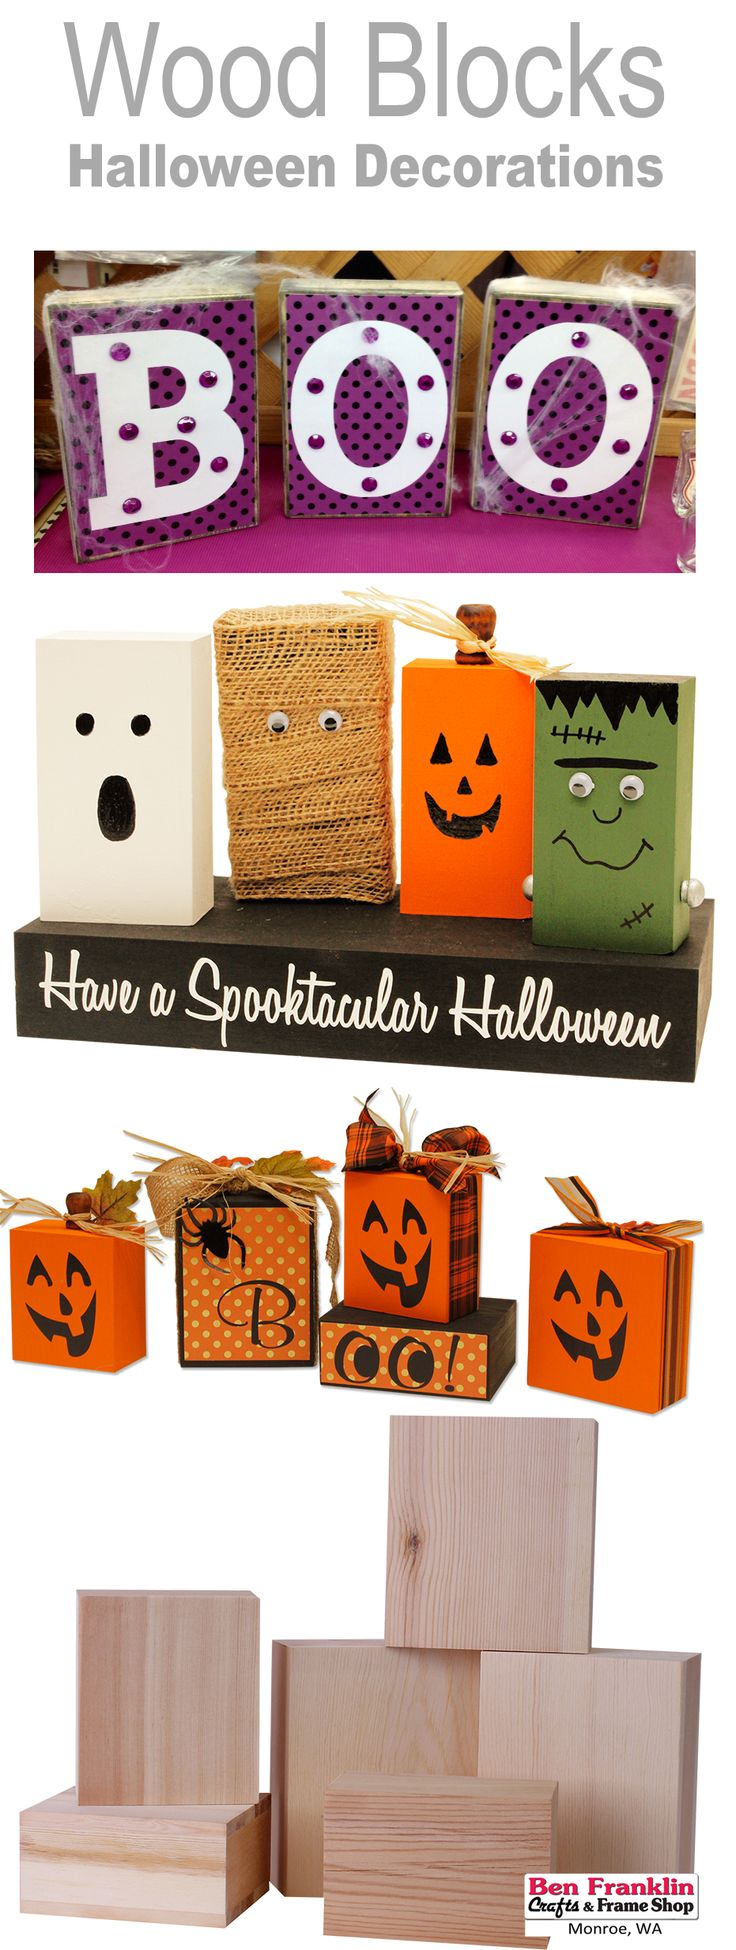 3 diy halloween block decorations wonder what to do with unfinished wood blocks we have - Diy Halloween Projects